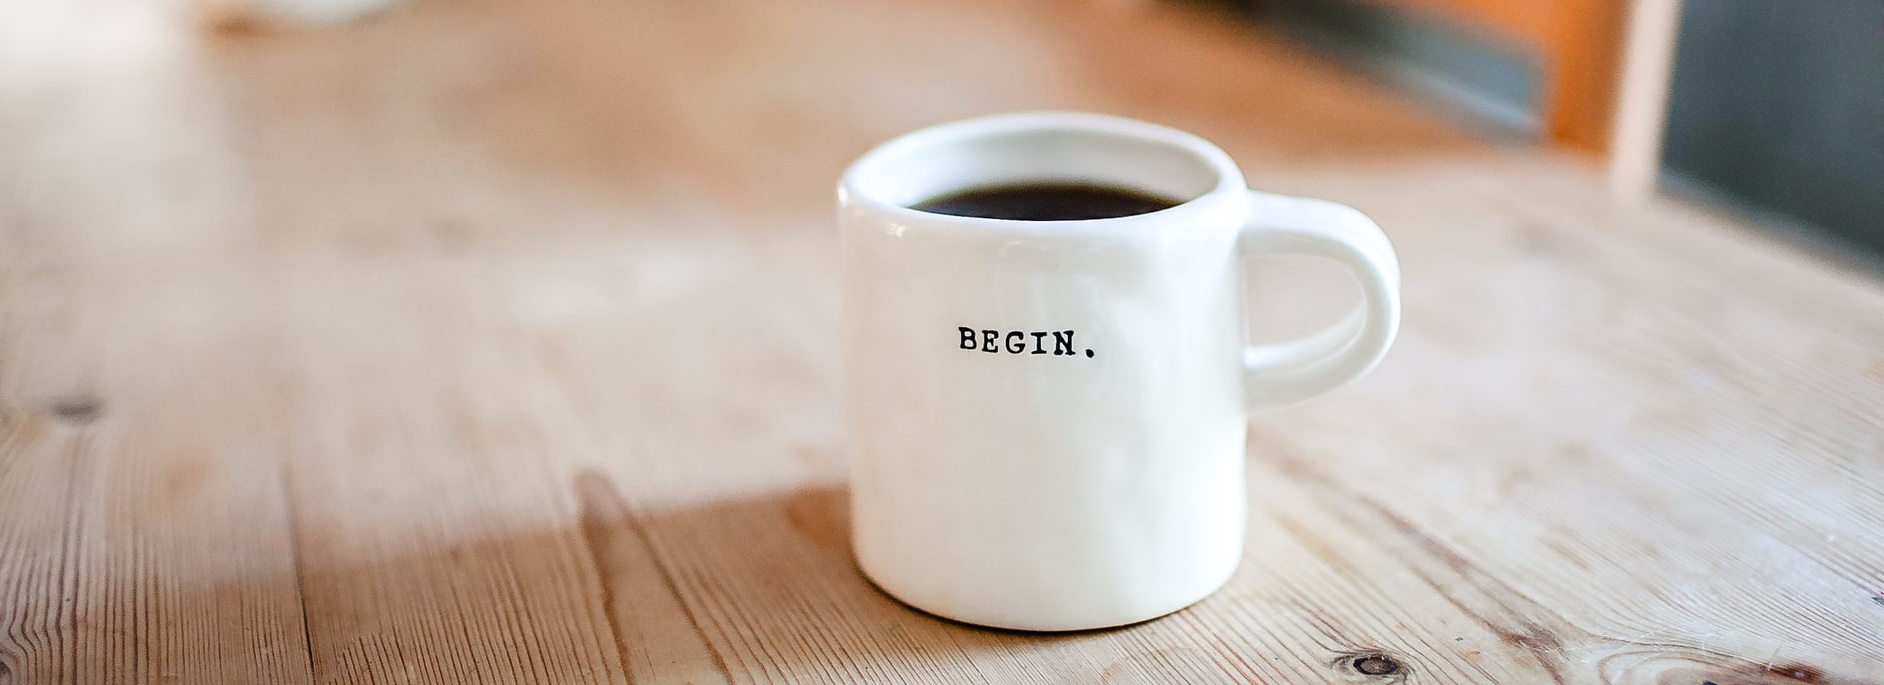 Mug with 'Begin' on front